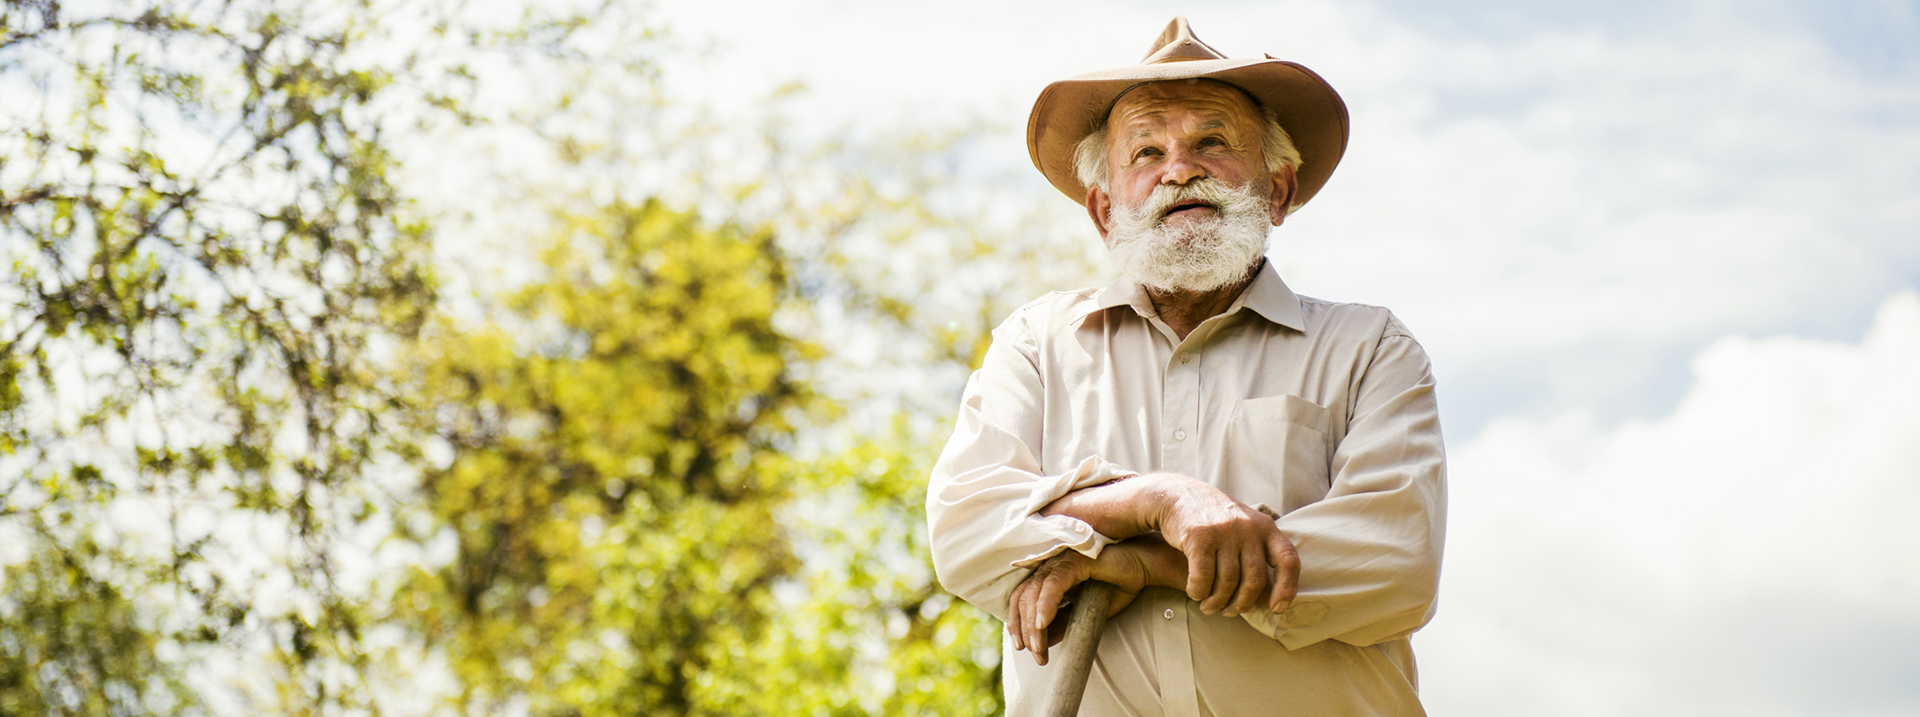 What can an old farmer teach you about goals?